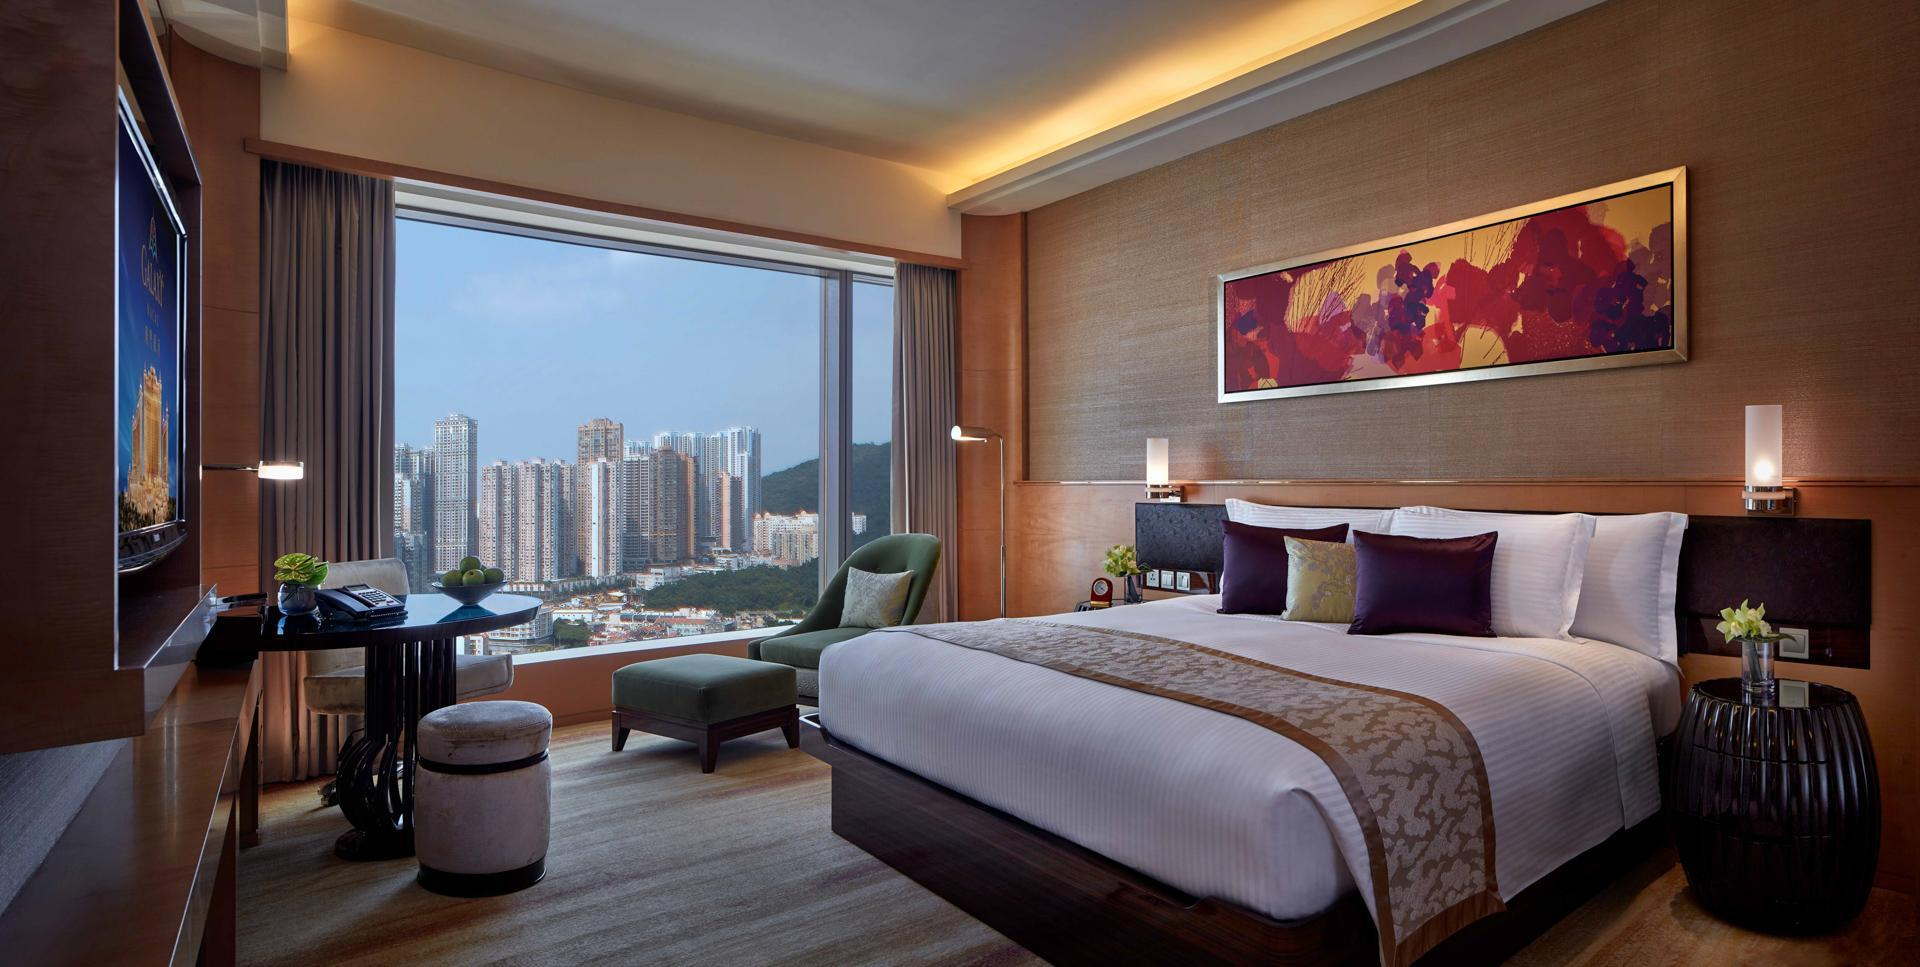 銀河城景房(特大床) (Galaxy City View King Room)